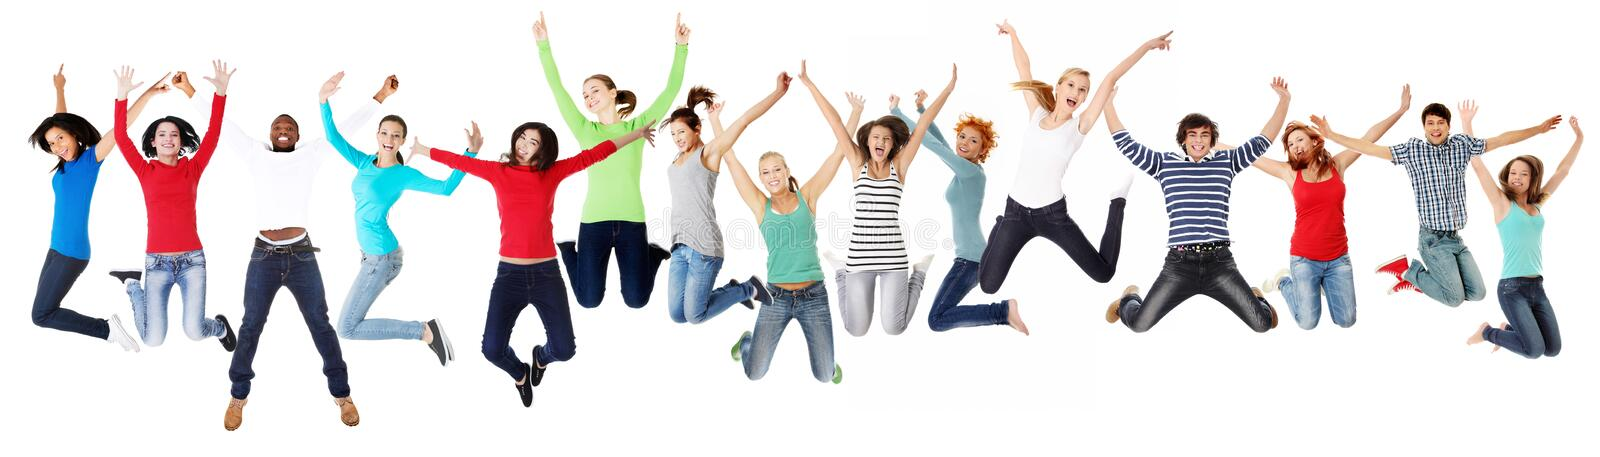 Group of happy young people jumping royalty free stock photo